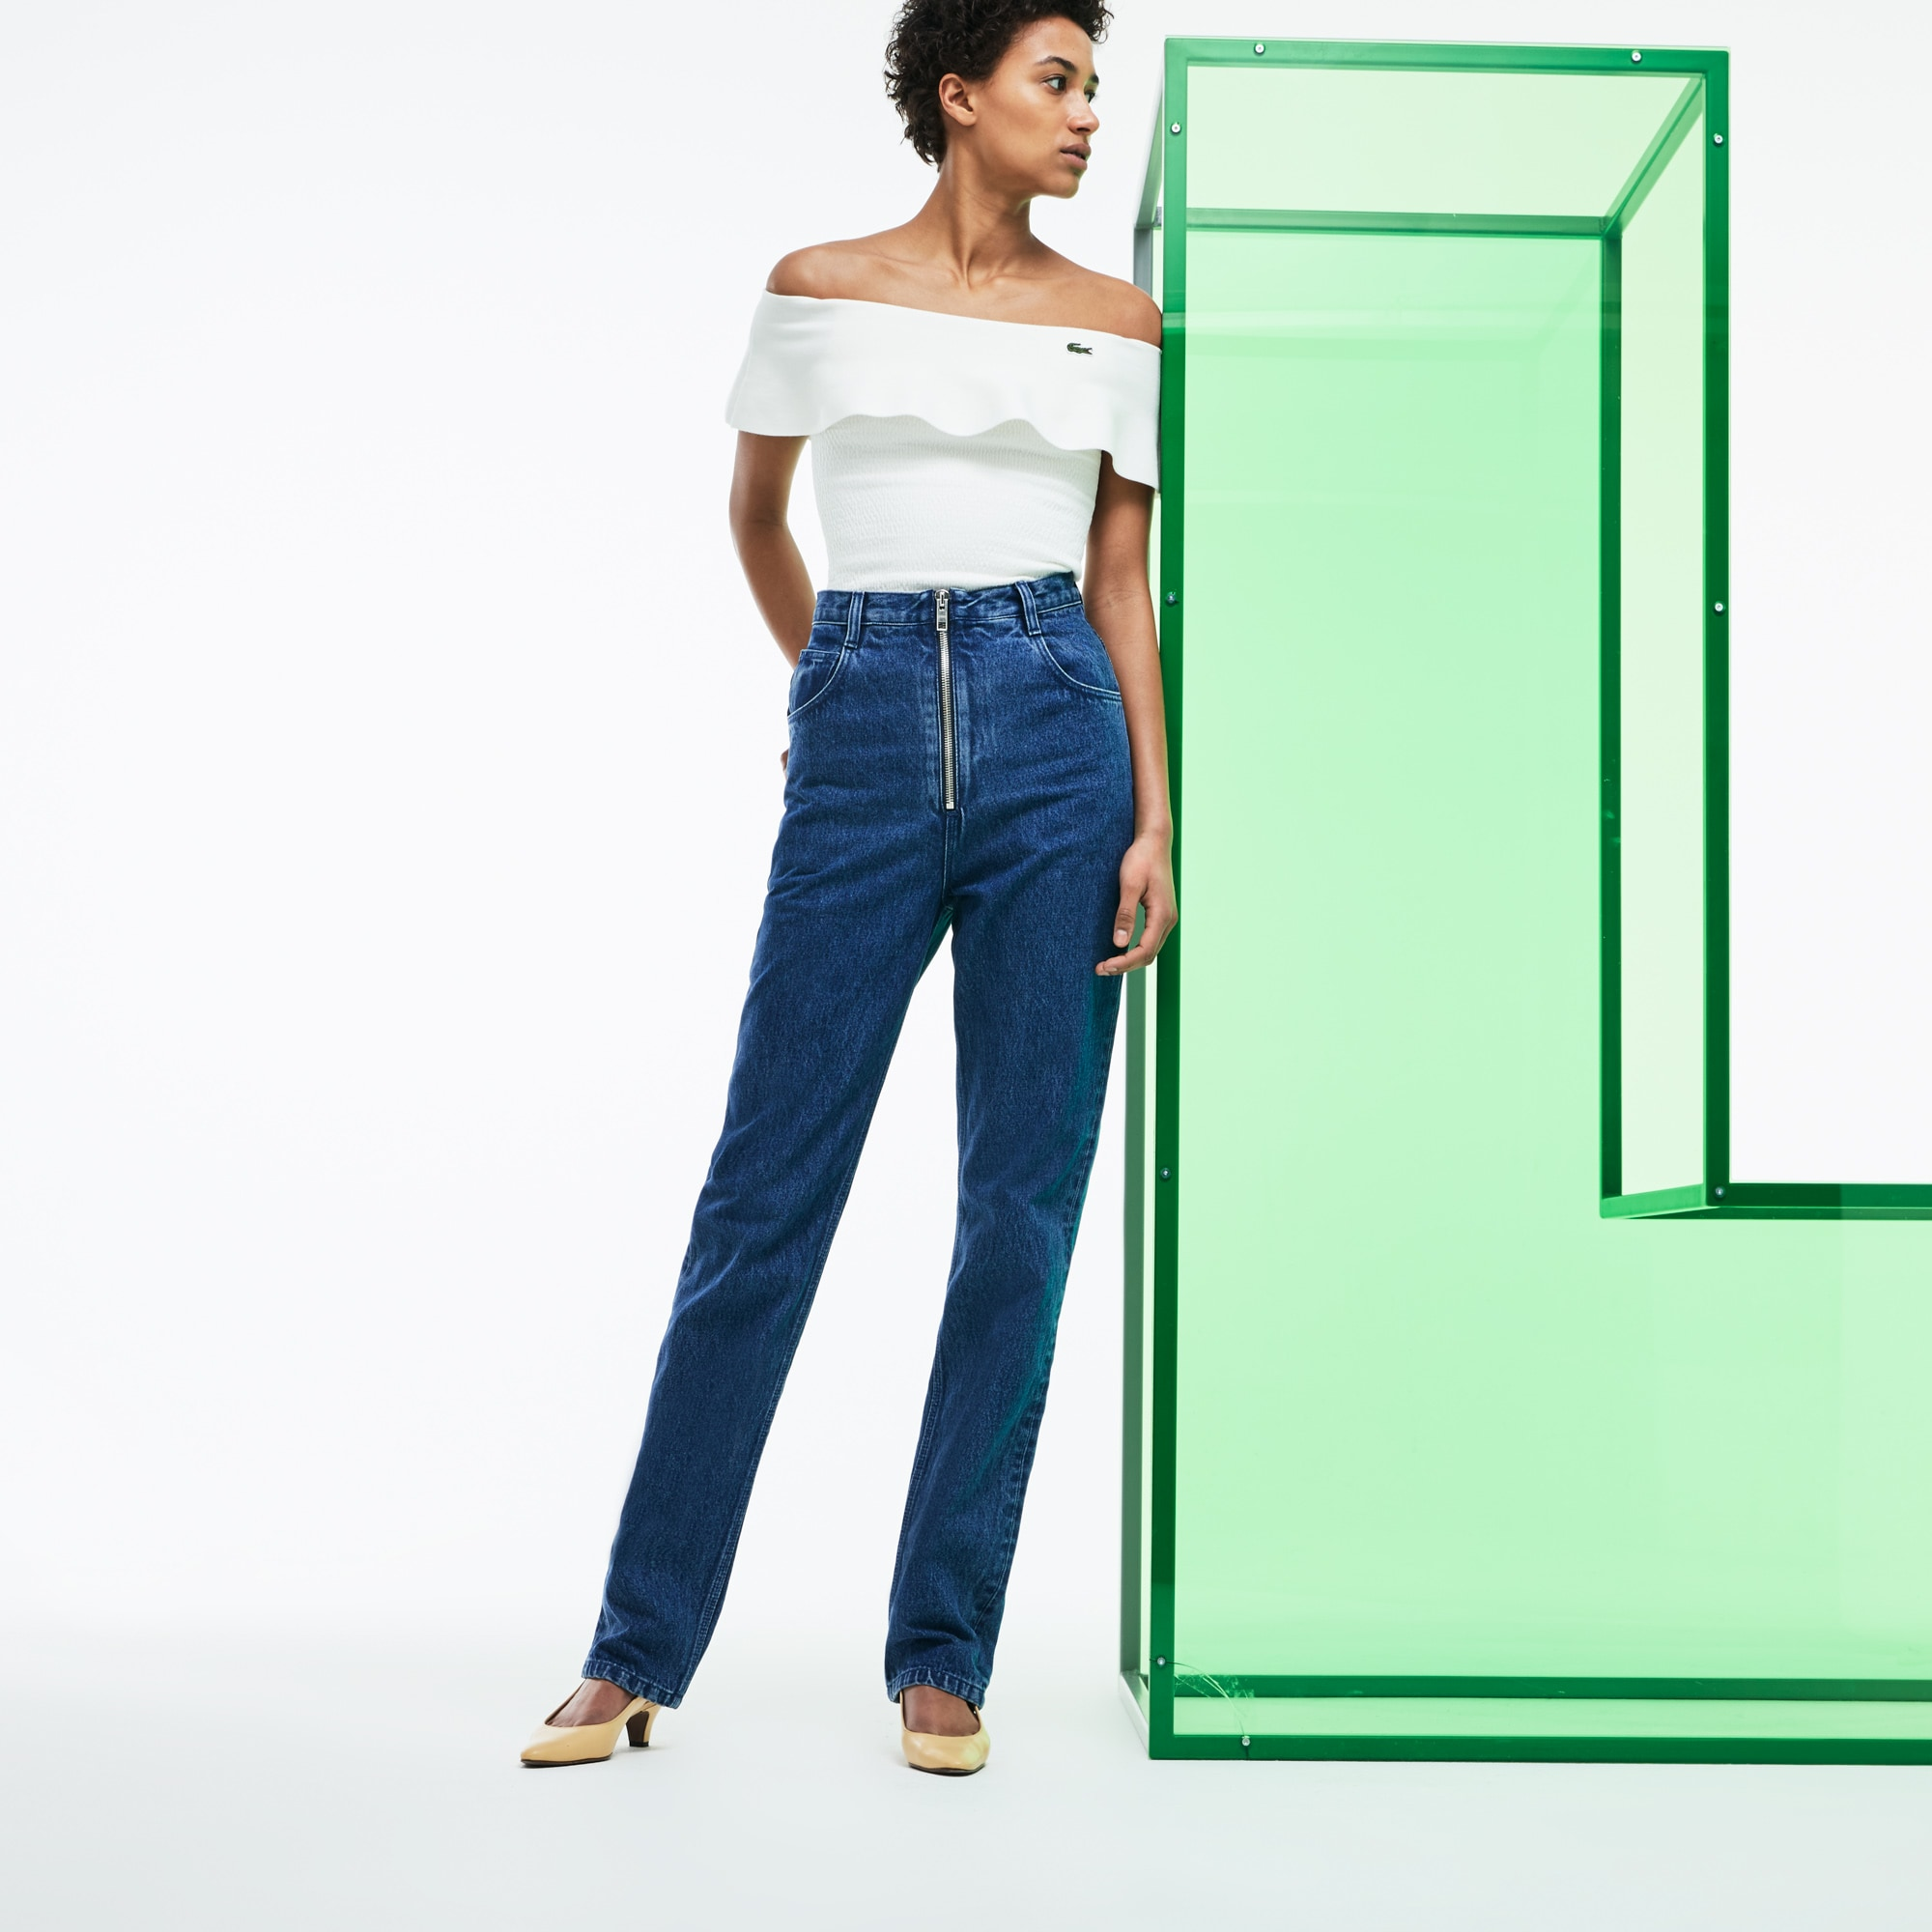 Damen High-Waist Jeans aus der Fashion Show Kollektion